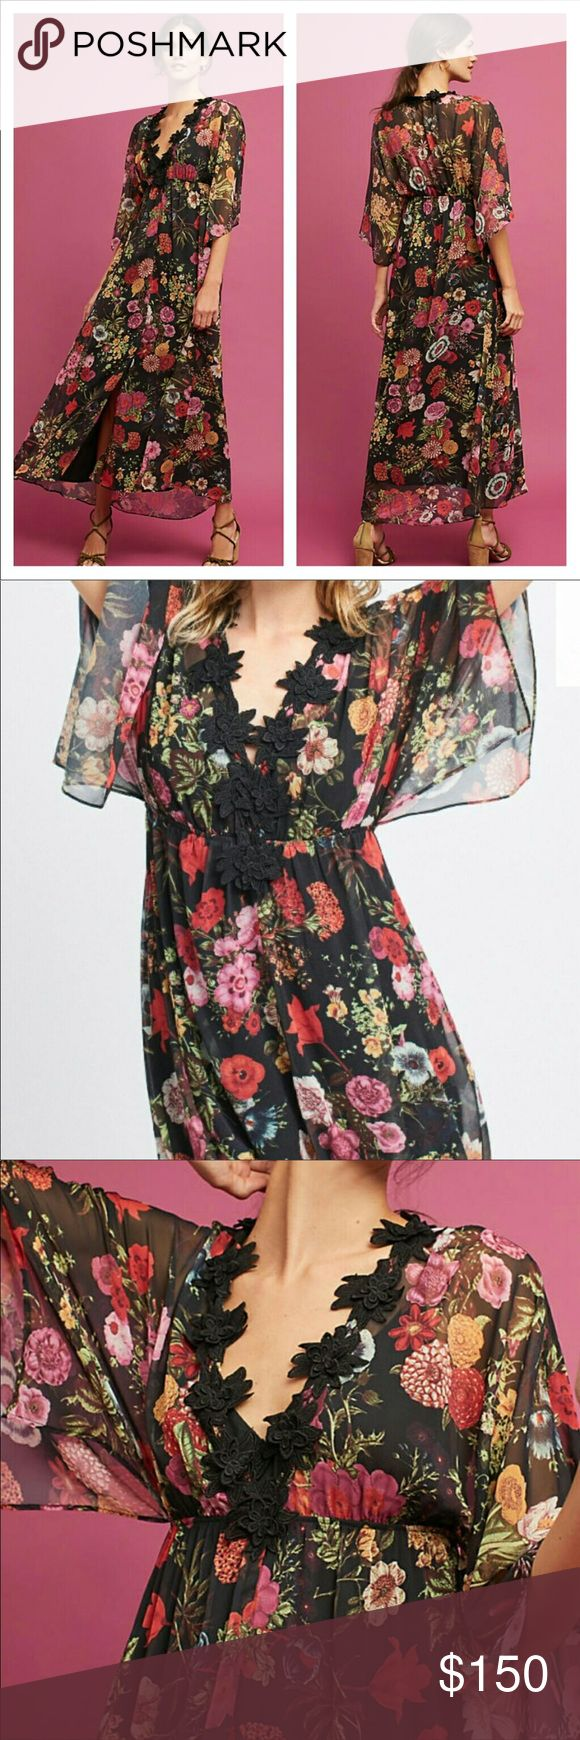 2ca9121ff52a NWT Anthropologie Farm Rio Laina Maxi Dress A deep v-neck trimmed with bold  lace makes a statement on this delicate floral gown.